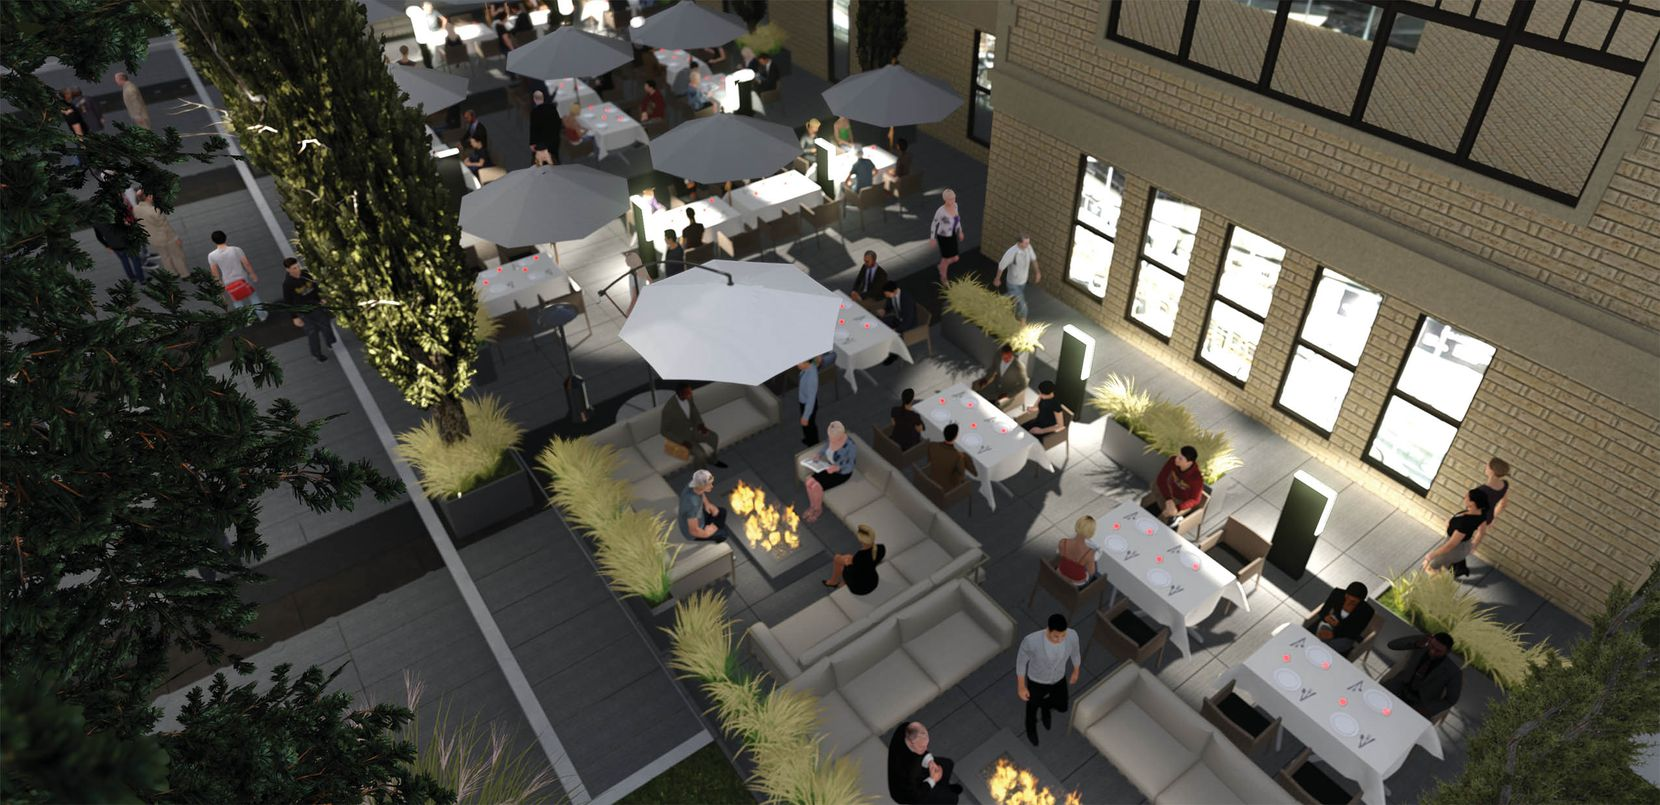 A ground floor patio are is planned at the old Dallas High School.